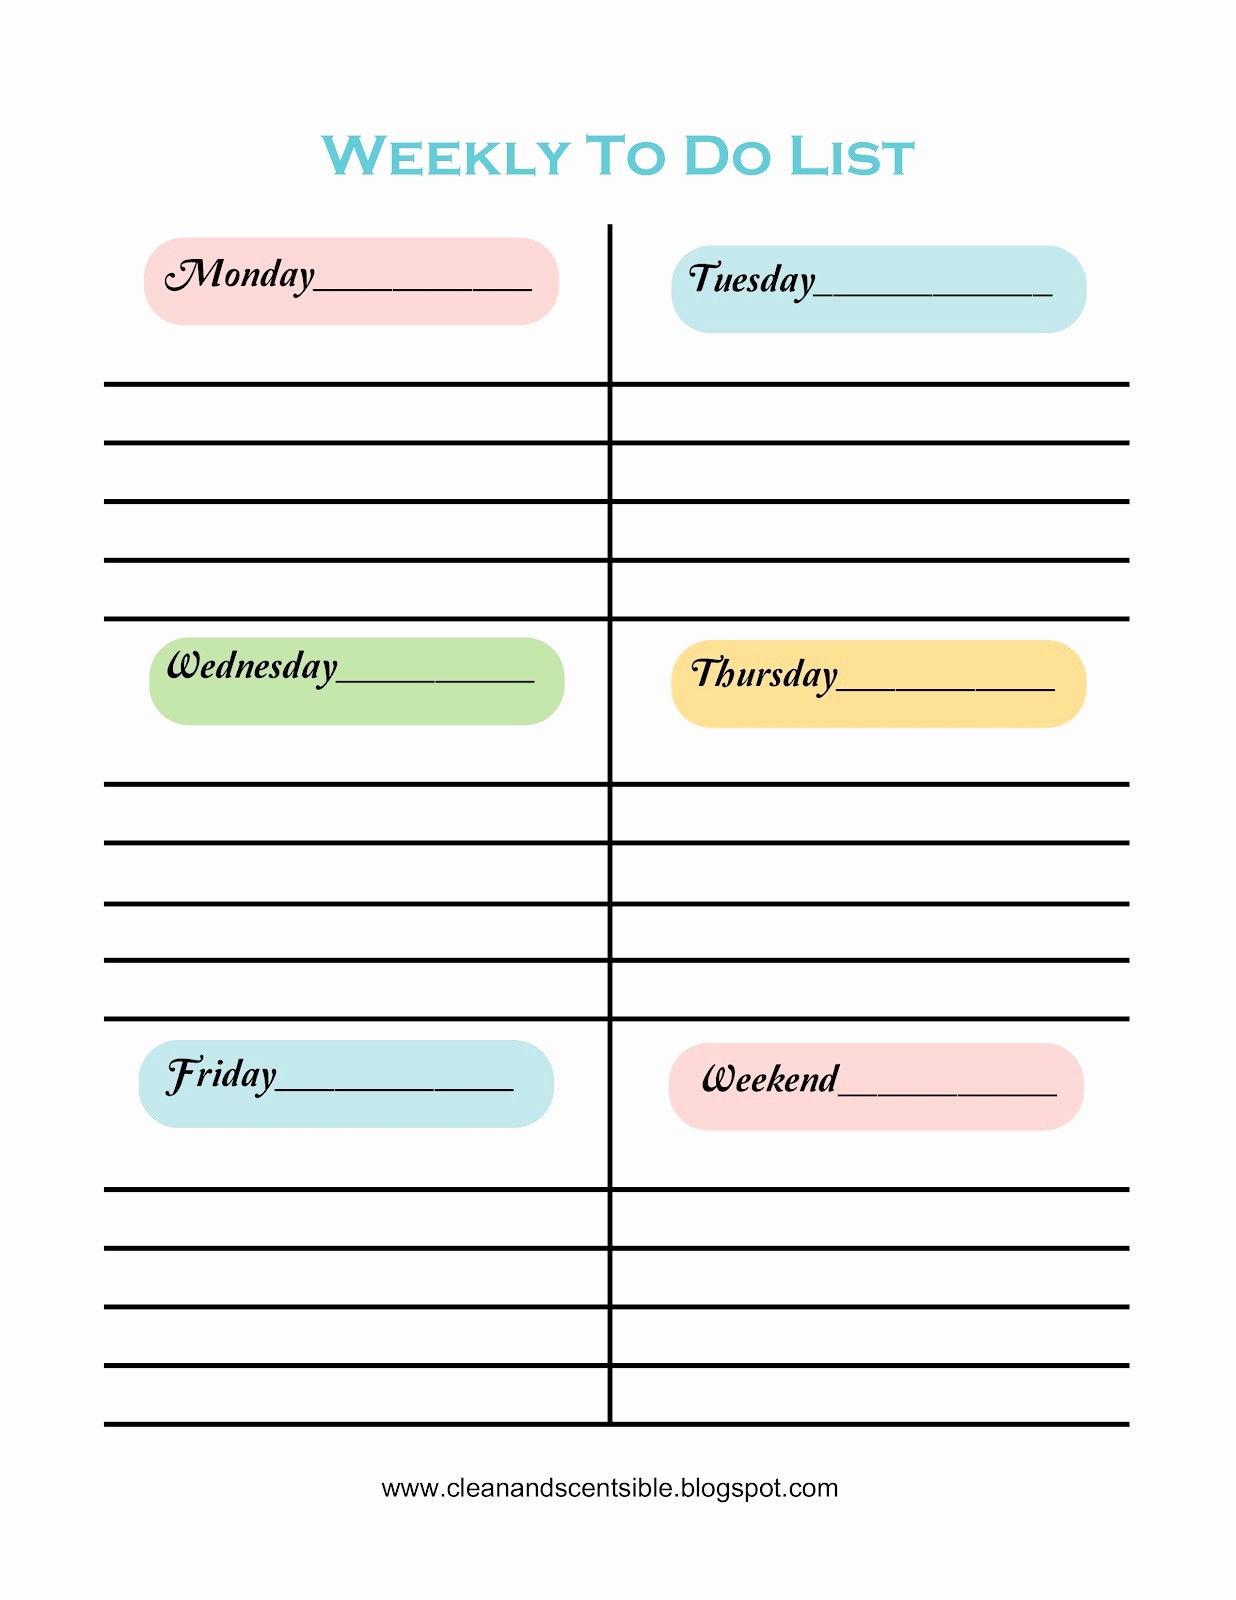 To Do List Weekly Template Lovely Making to Do Lists Fun Clean and Scentsible